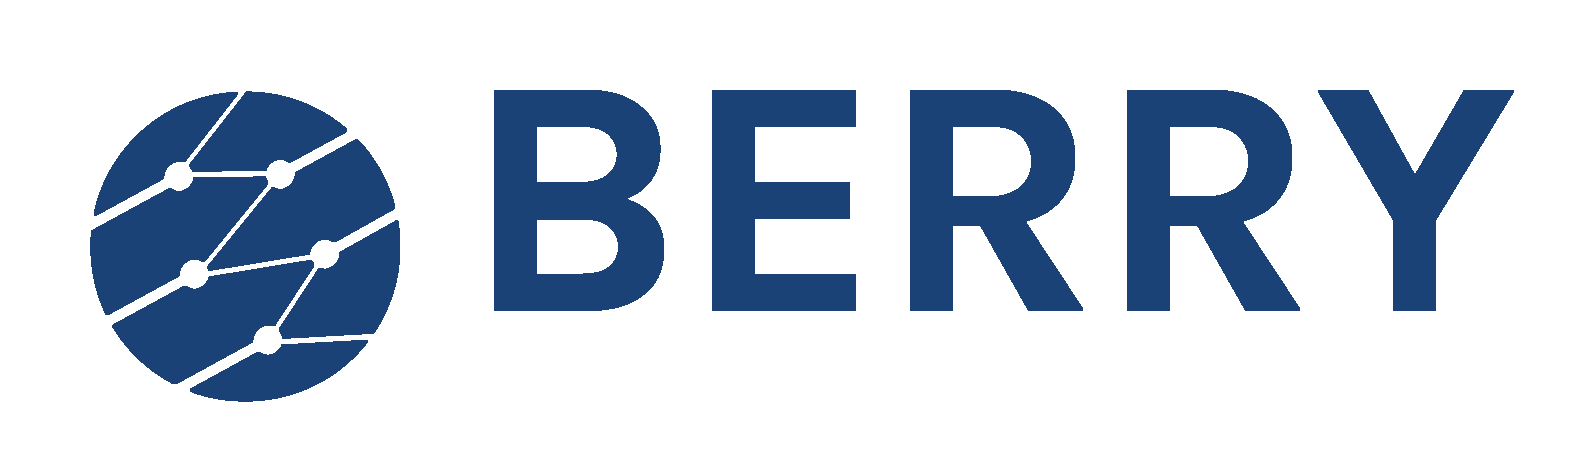 Berry Technology Solutions